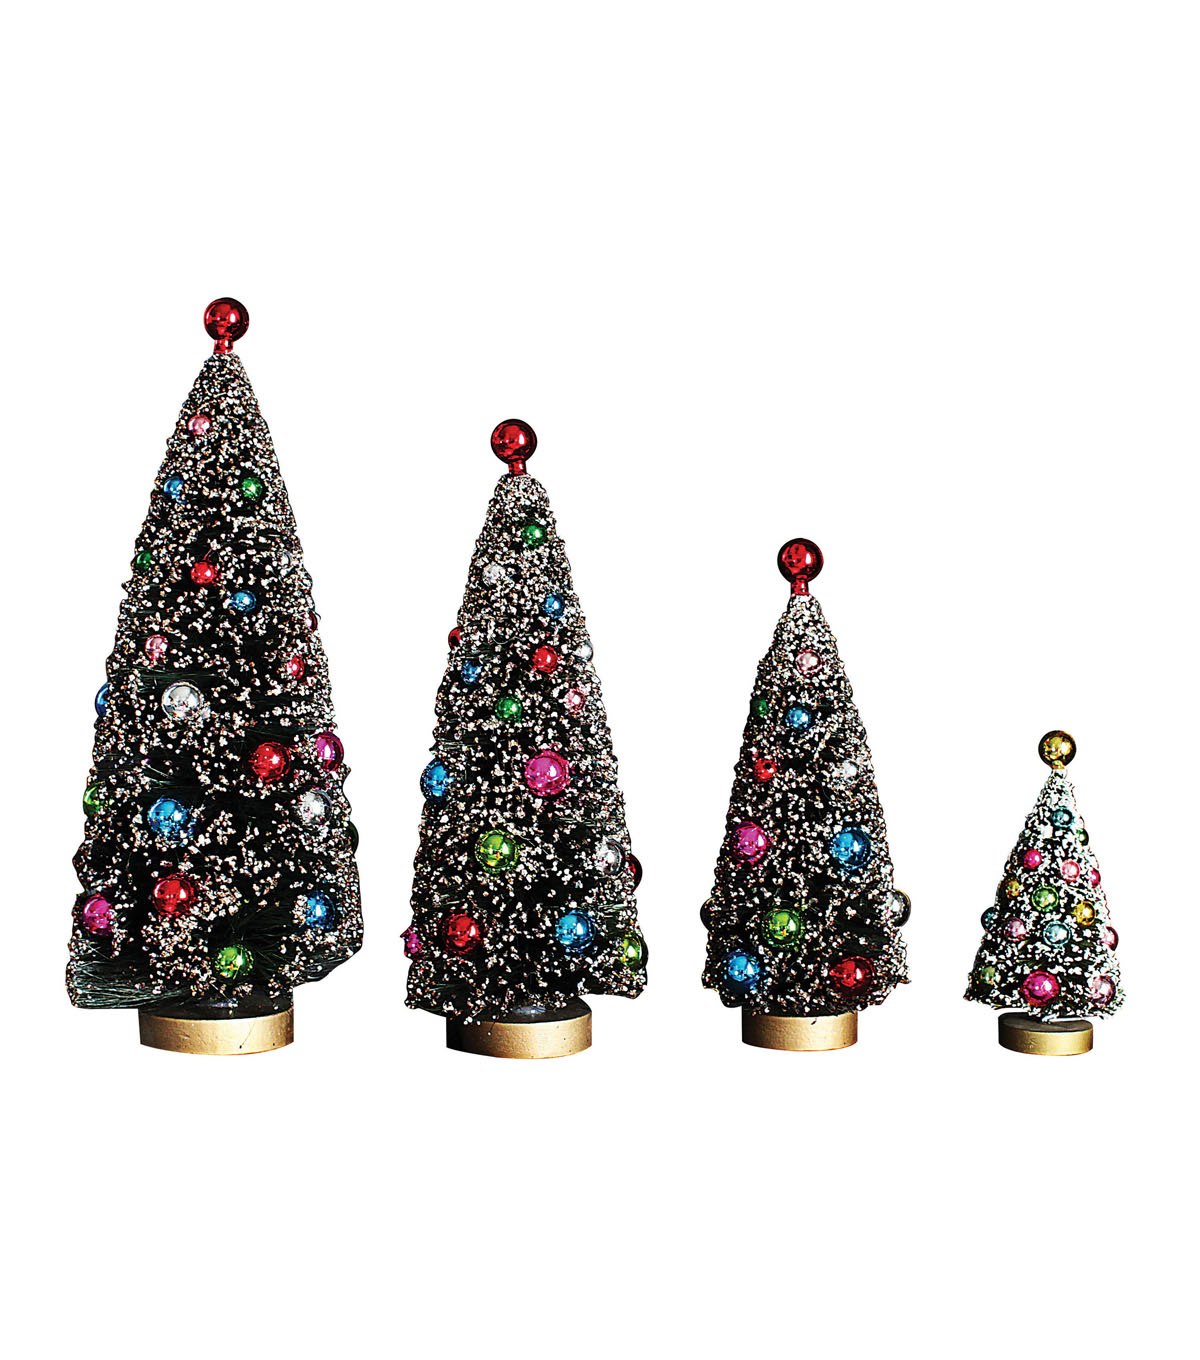 Christmas 4 pk Bottle Brush Trees with Ornaments-Multi Color